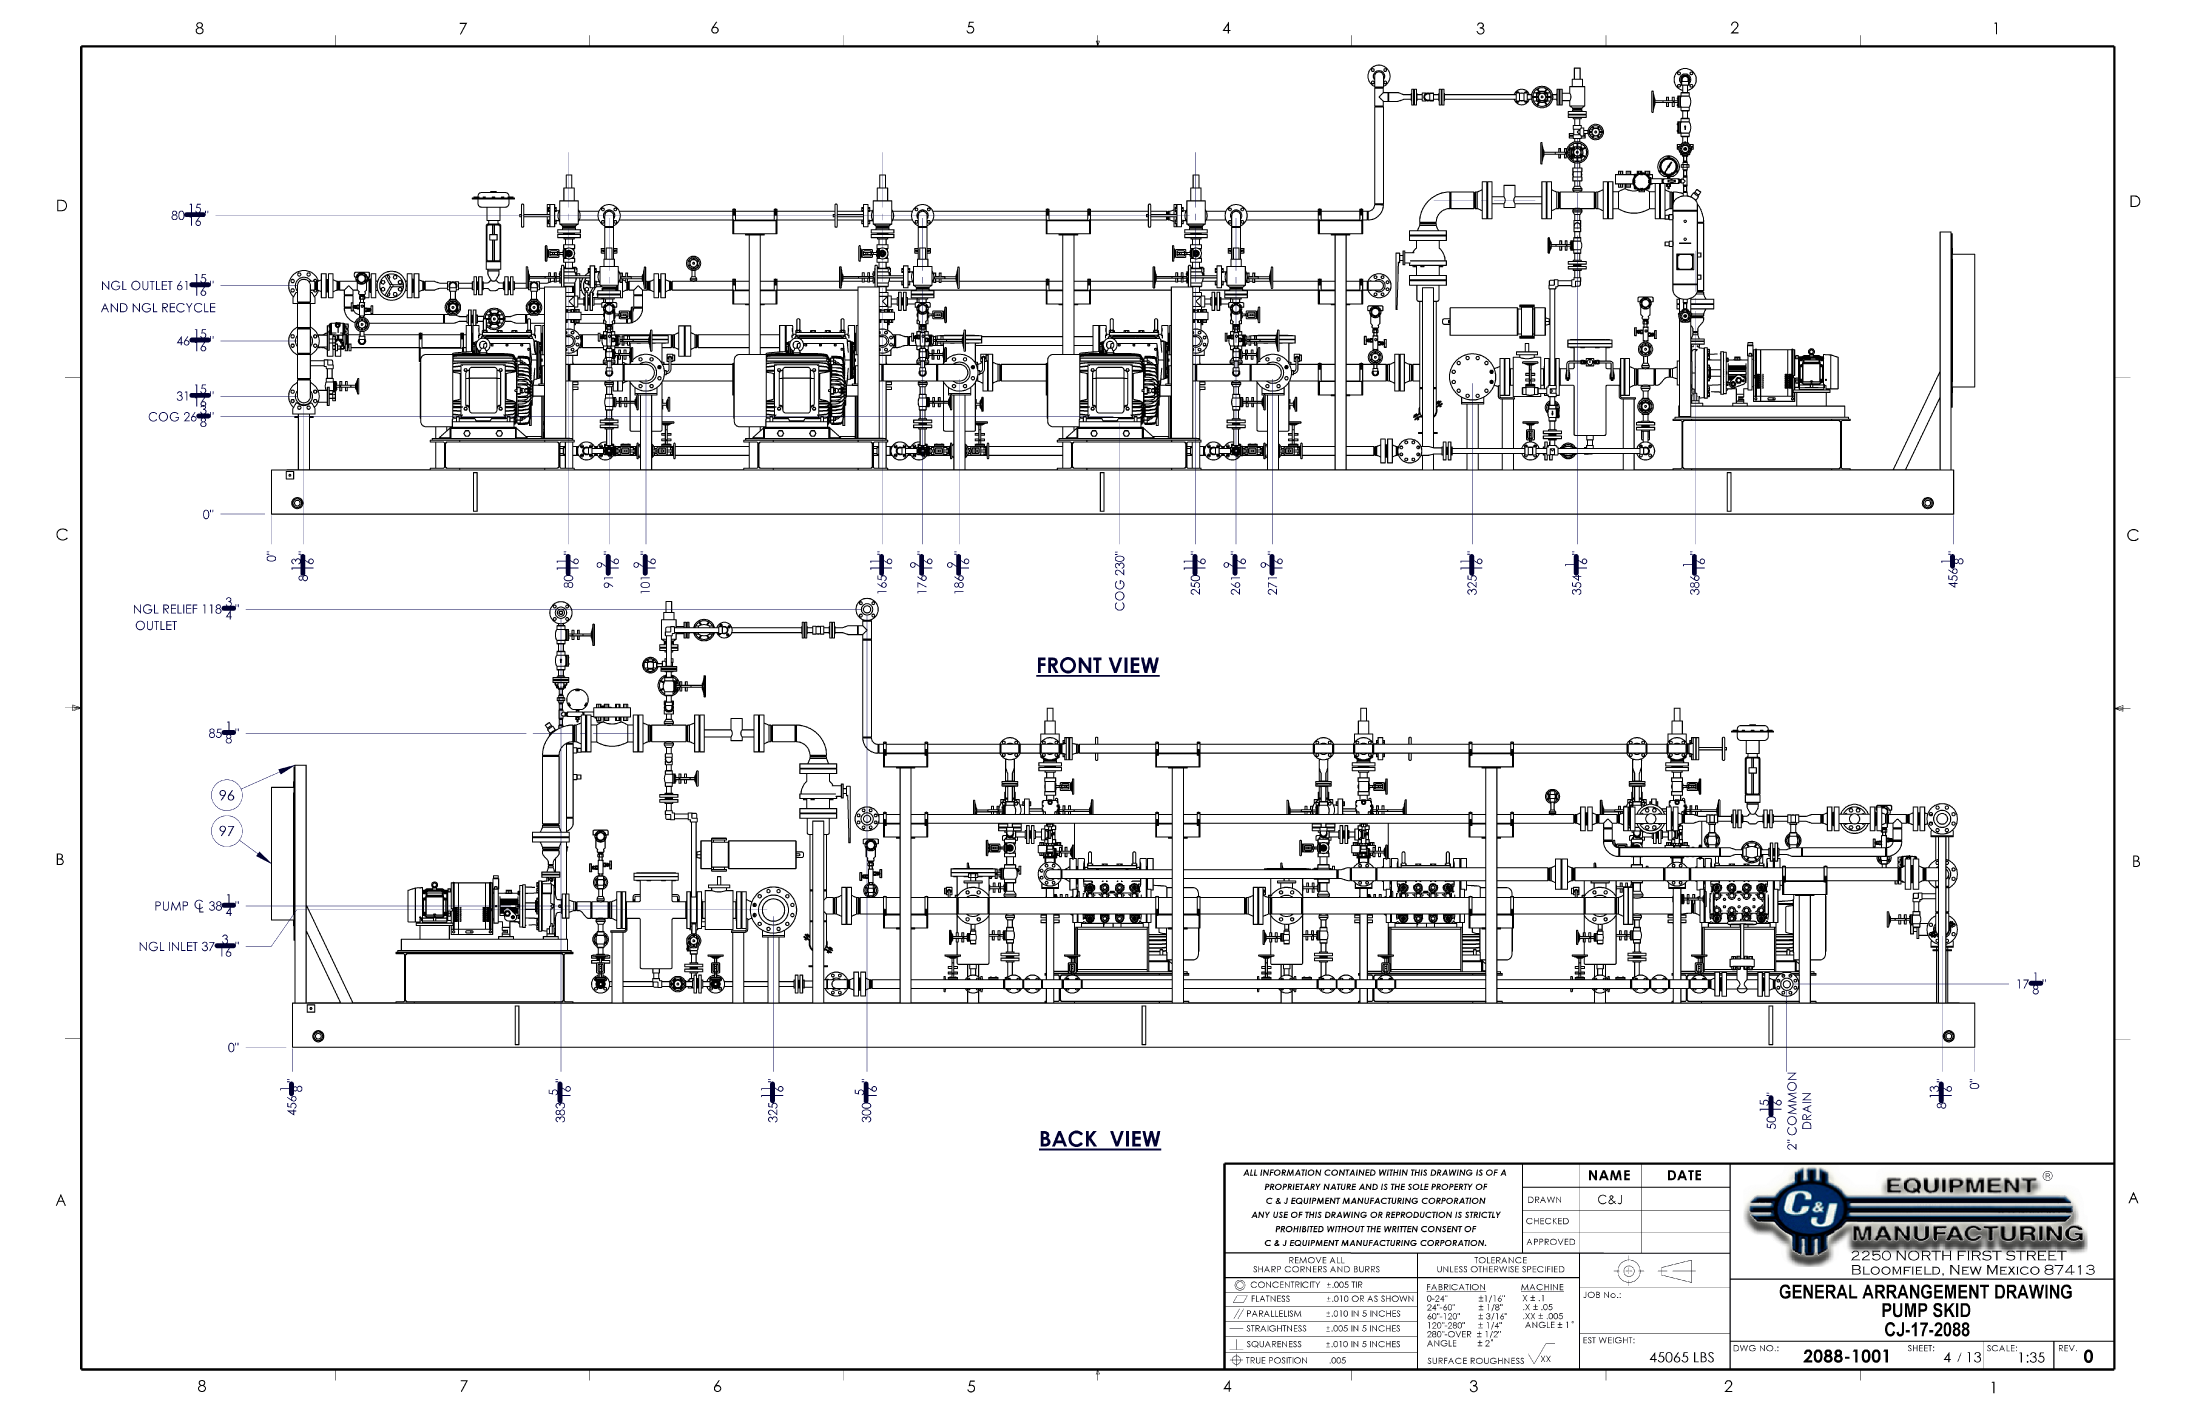 Engineering Design Cj Equipment Diagram